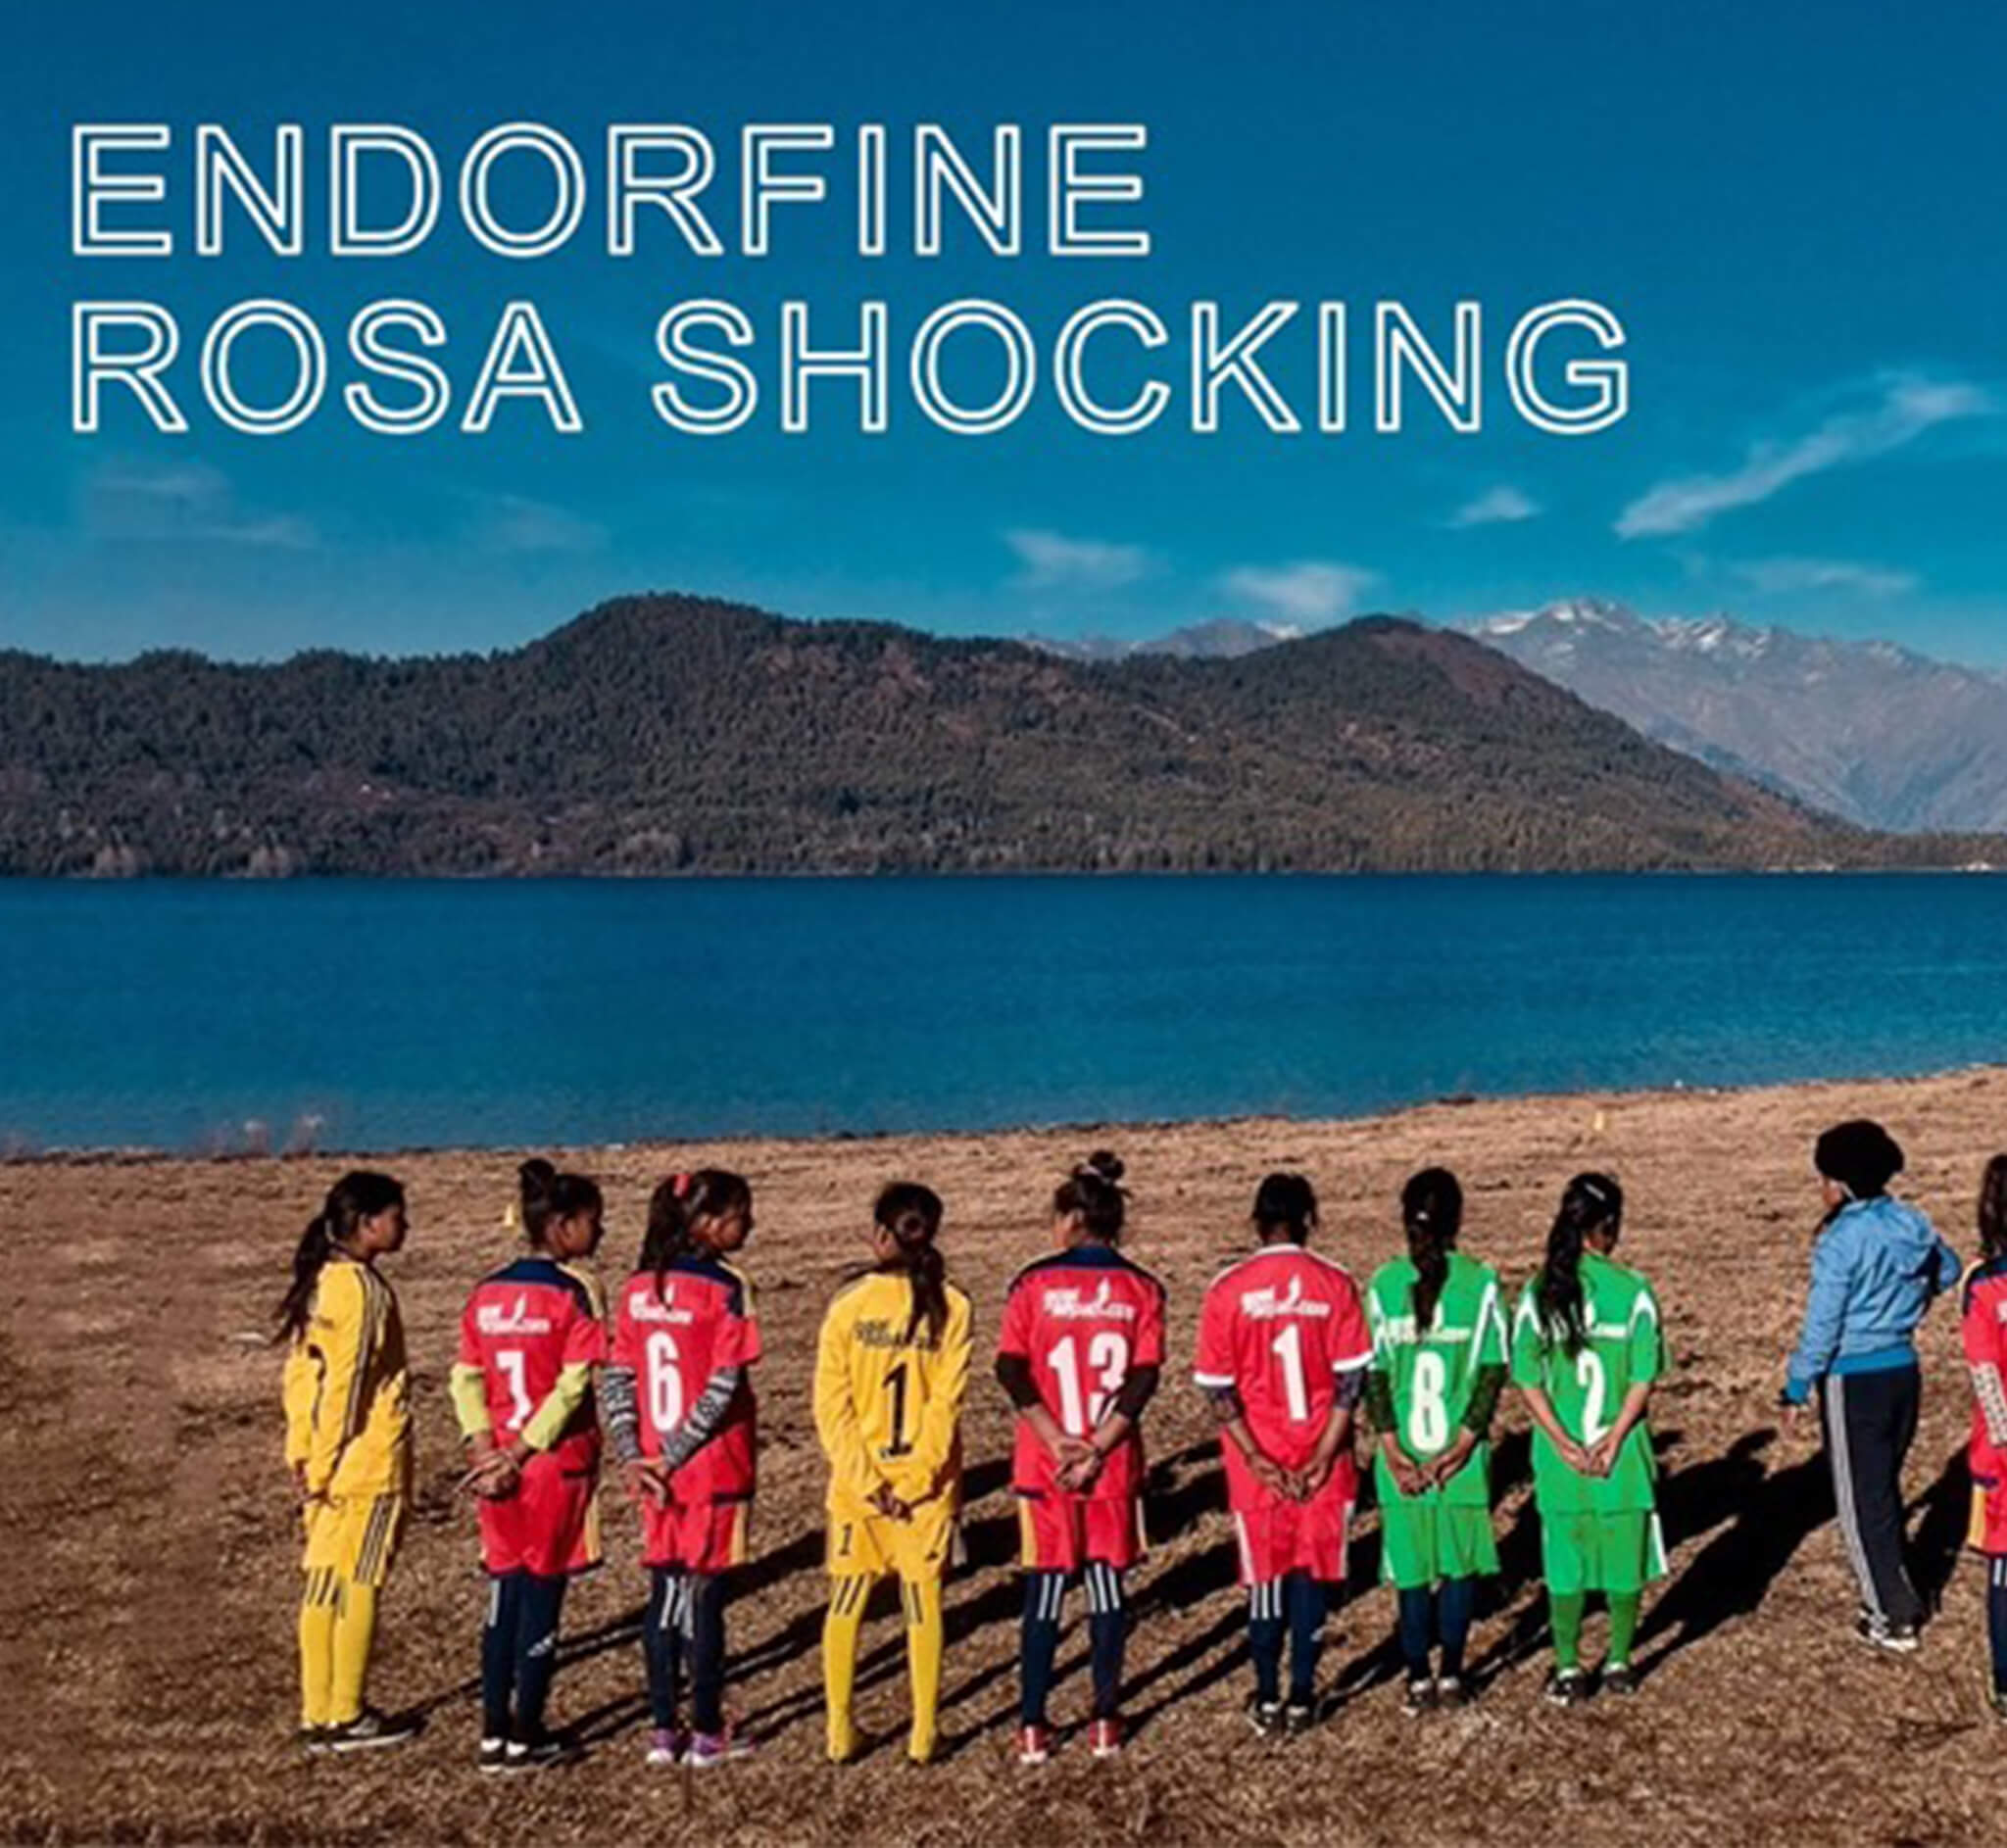 ENDORFINE ROSA SHOCKING